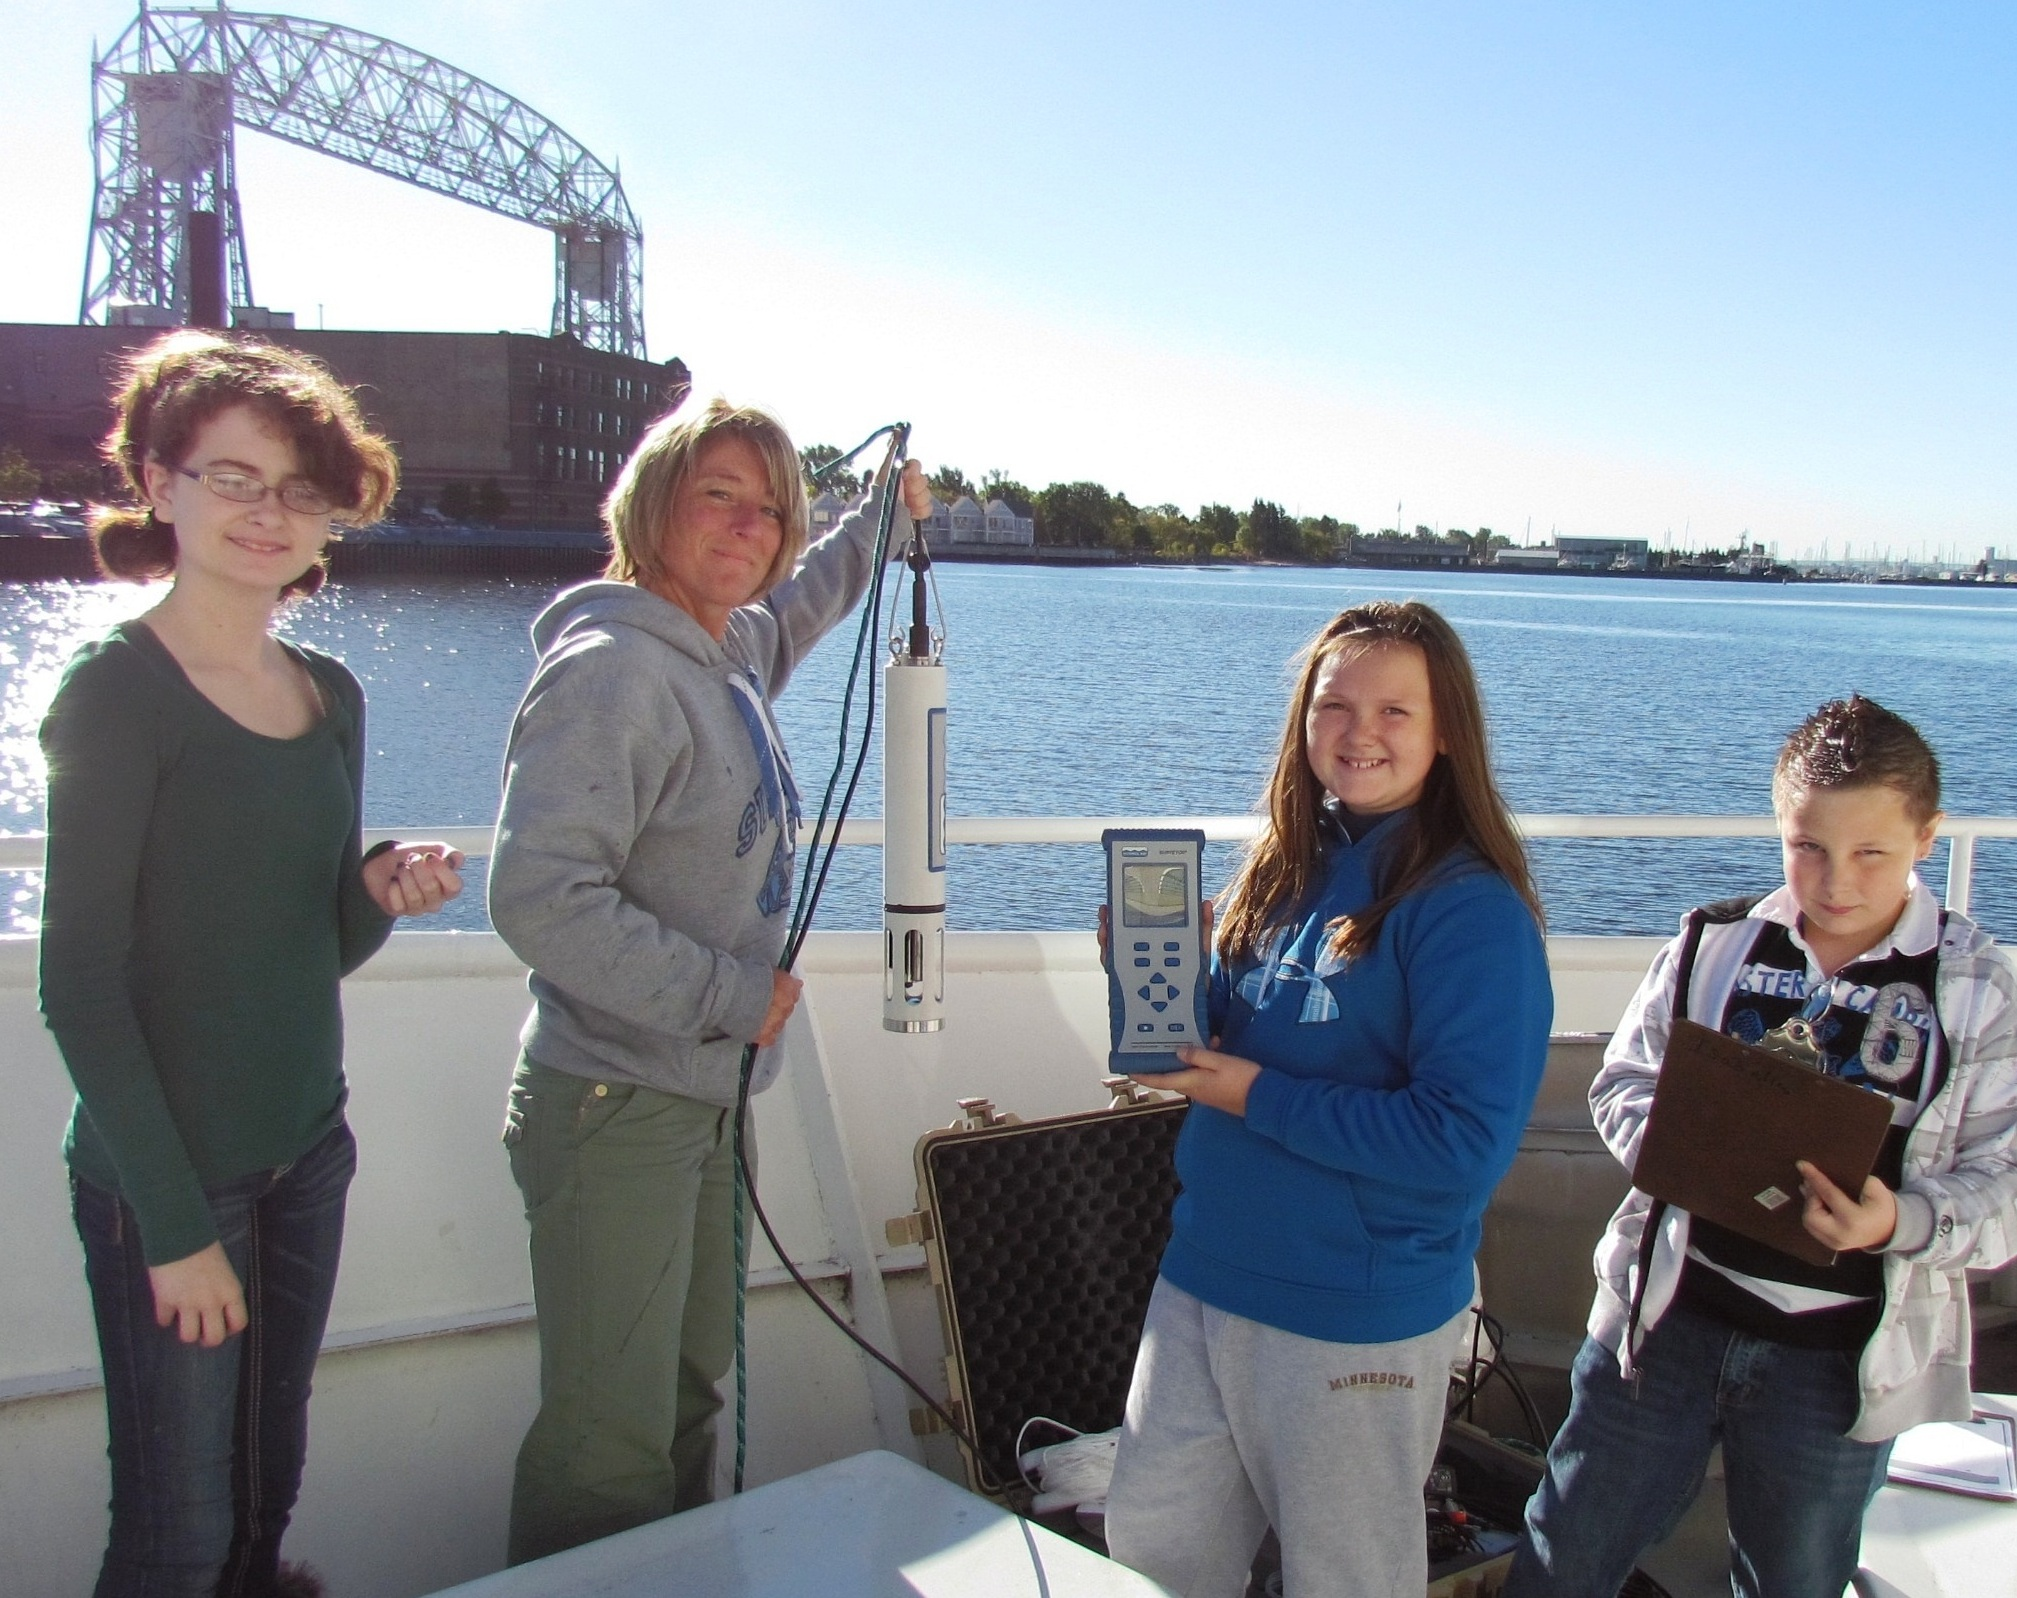 From left: a female student, a female teacher holding a Hydrolab DS5 measurement tool, a female student holding a different Hydrolab DS5 measurement tool, and a male student holding a clipboard stand on a boat.